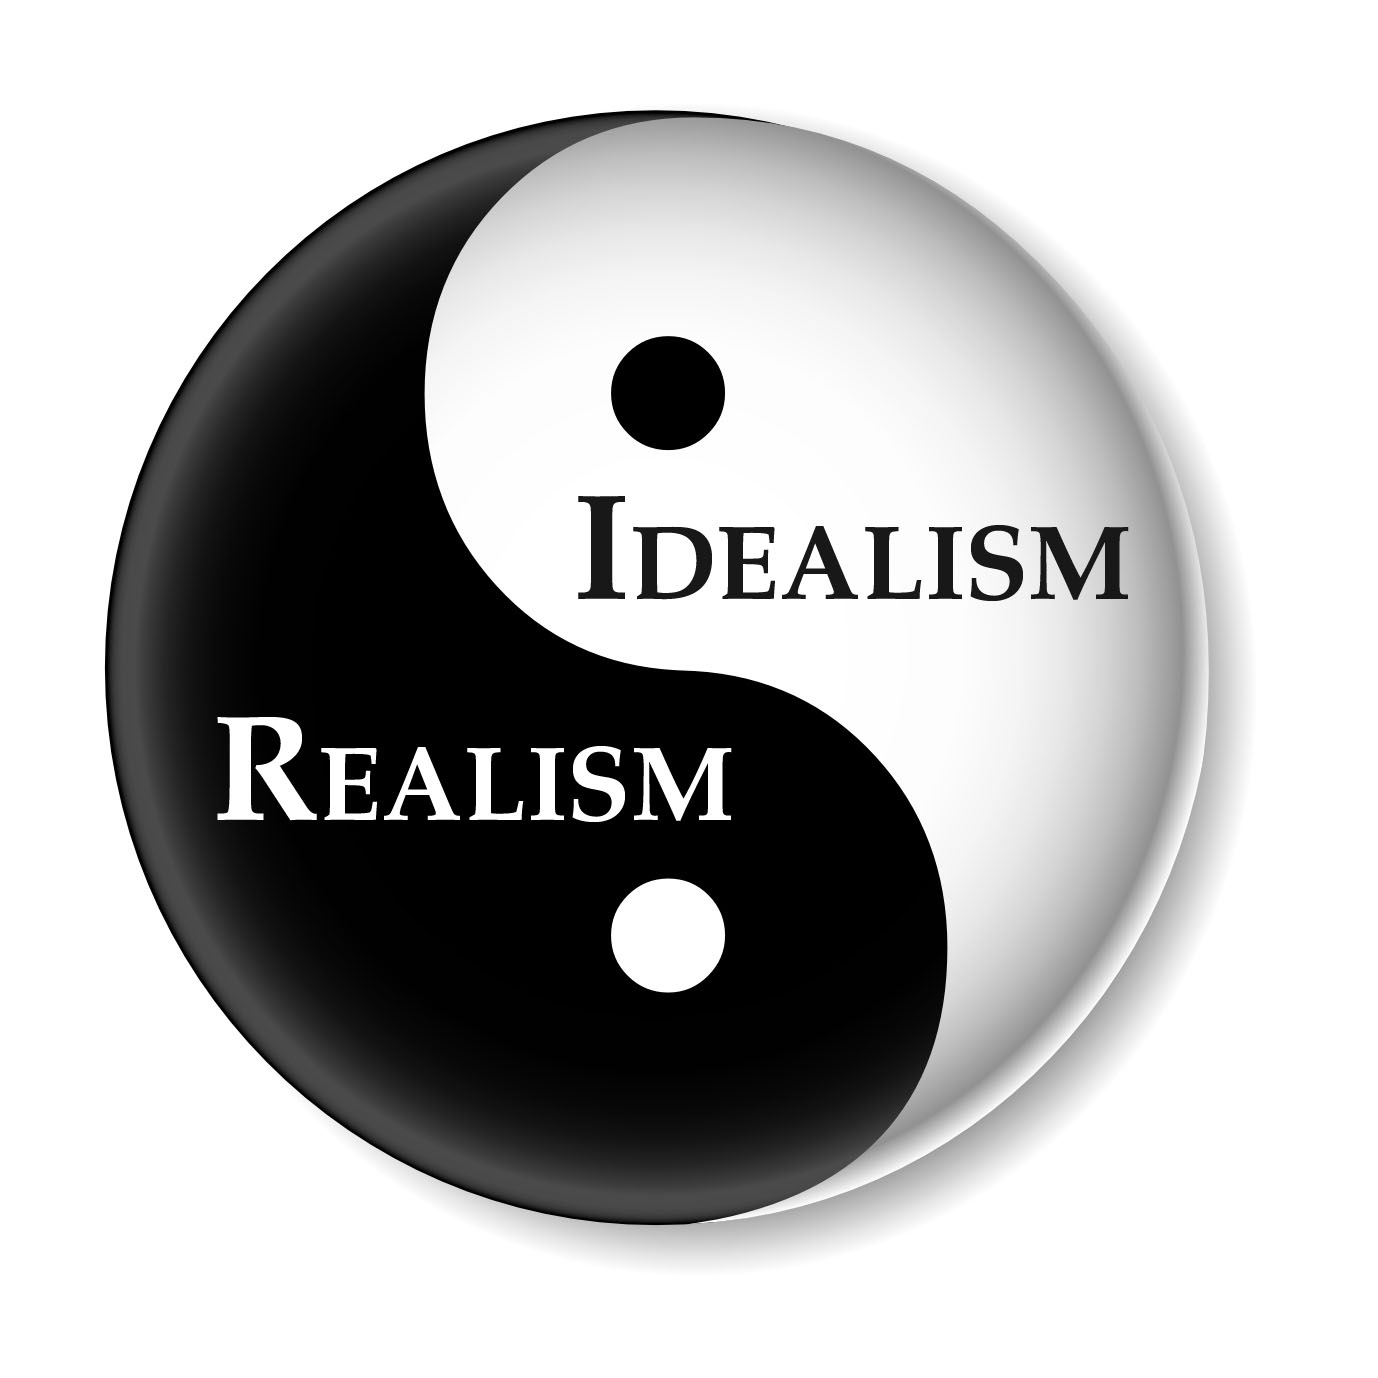 Is It a Good Thing to be Idealistic